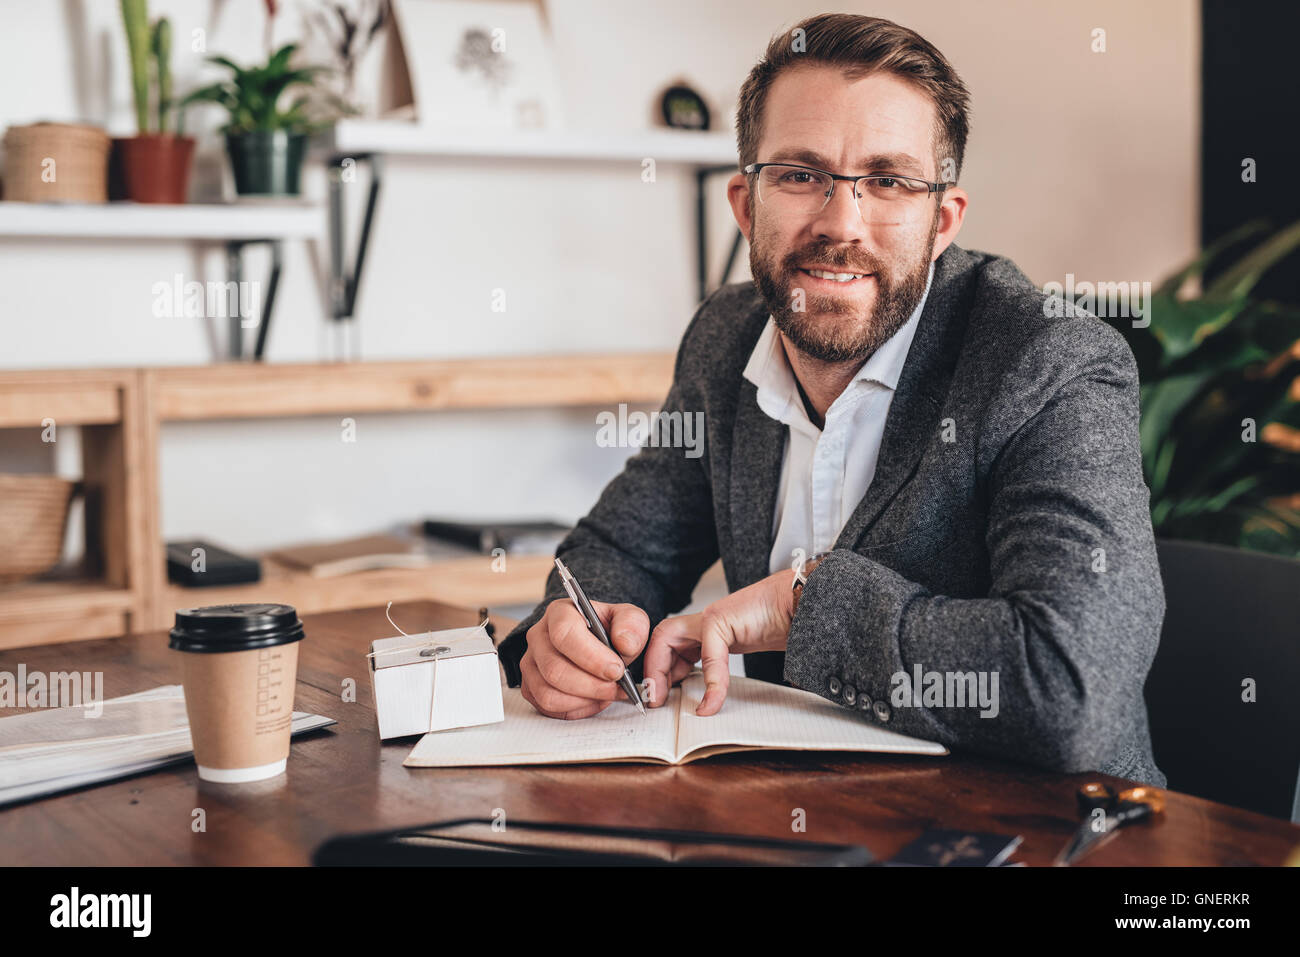 Growing a small business with smile - Stock Image